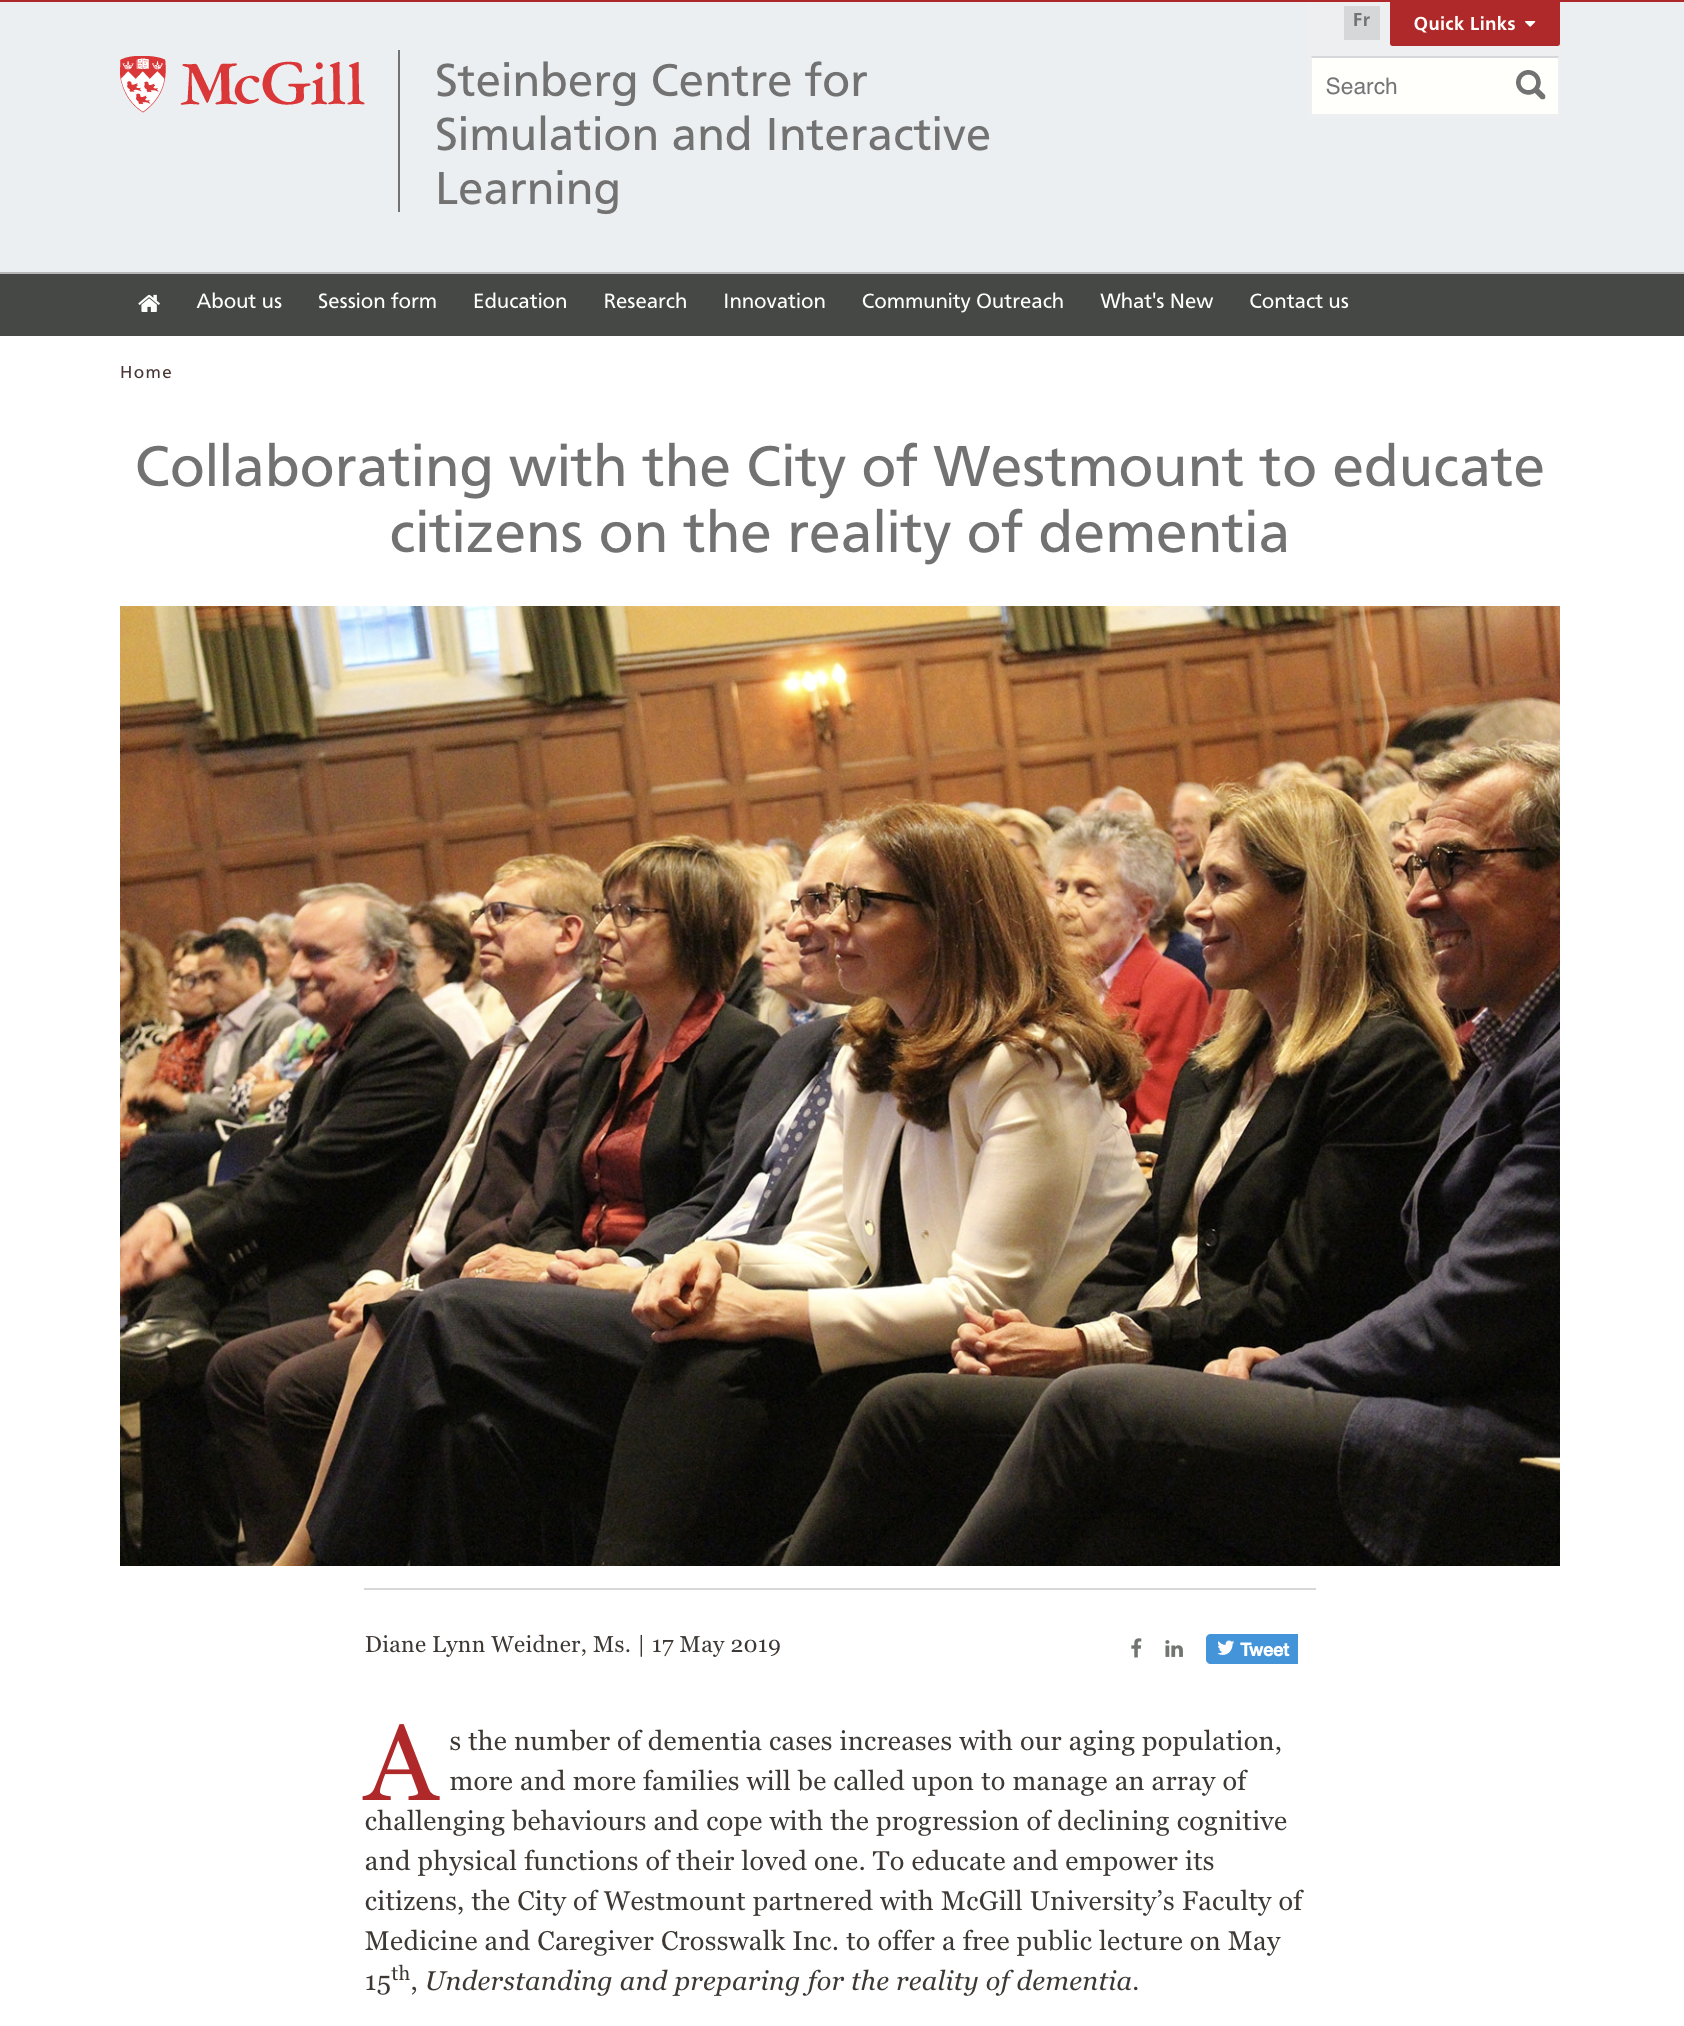 McGill - Collaborating with the City of Westmount to educate citizens on the reality of dementia